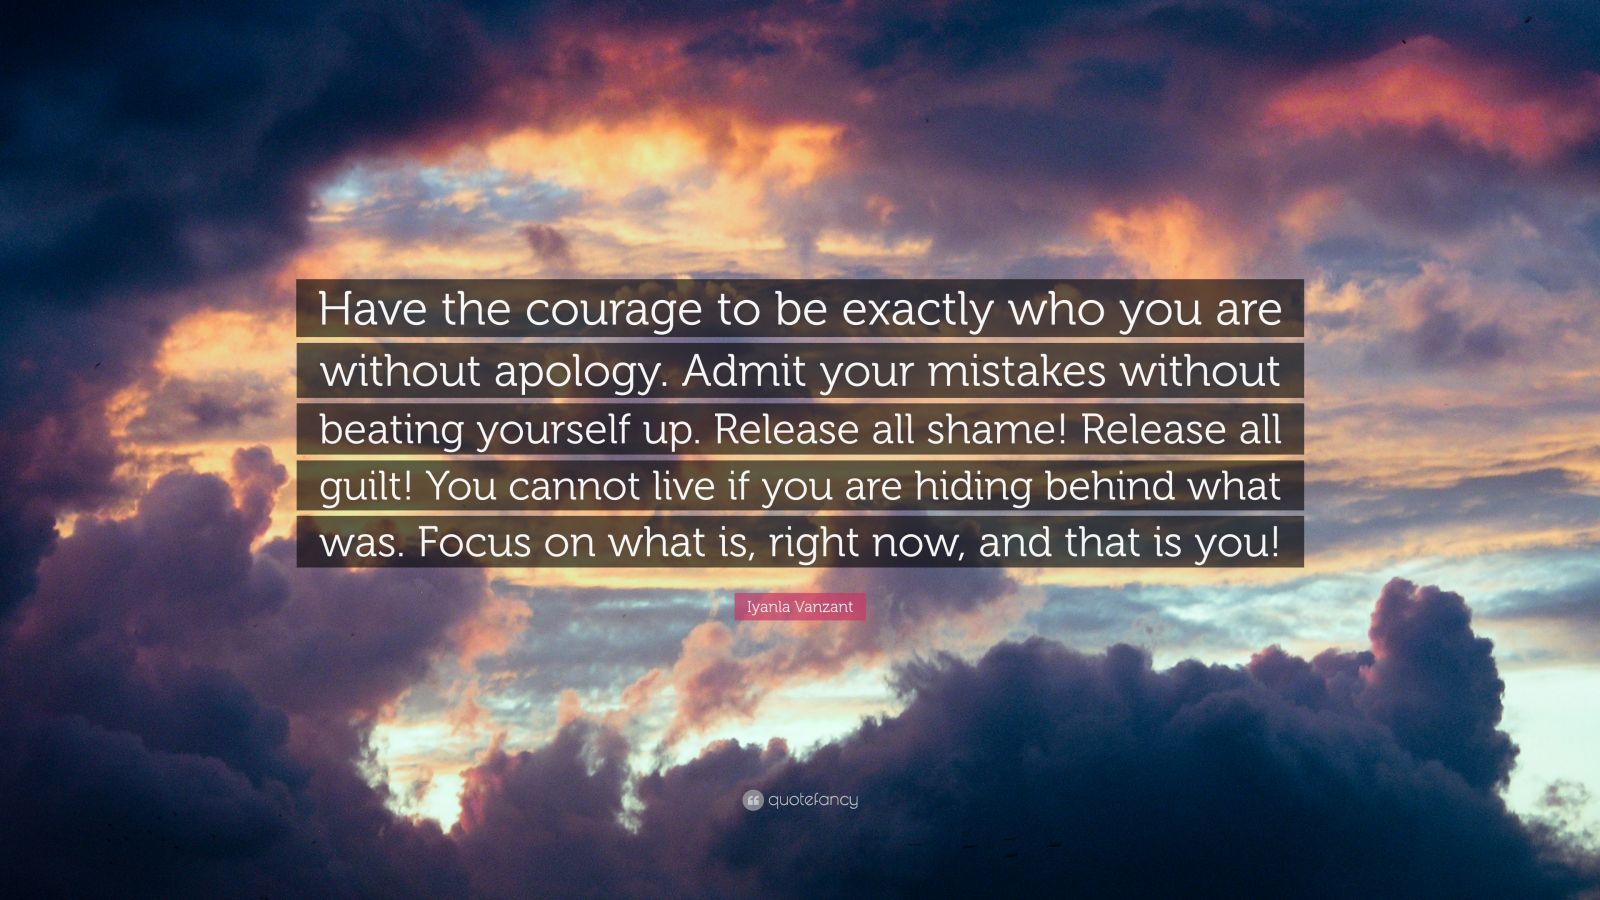 "Iyanla Vanzant Quote: ""Have the courage to be exactly who you are without apology. Admit your mistakes without beating yourself up. Release all shame! Release all guilt! You cannot live if you are hiding behind what was. Focus on what is, right now, and that is you!"""